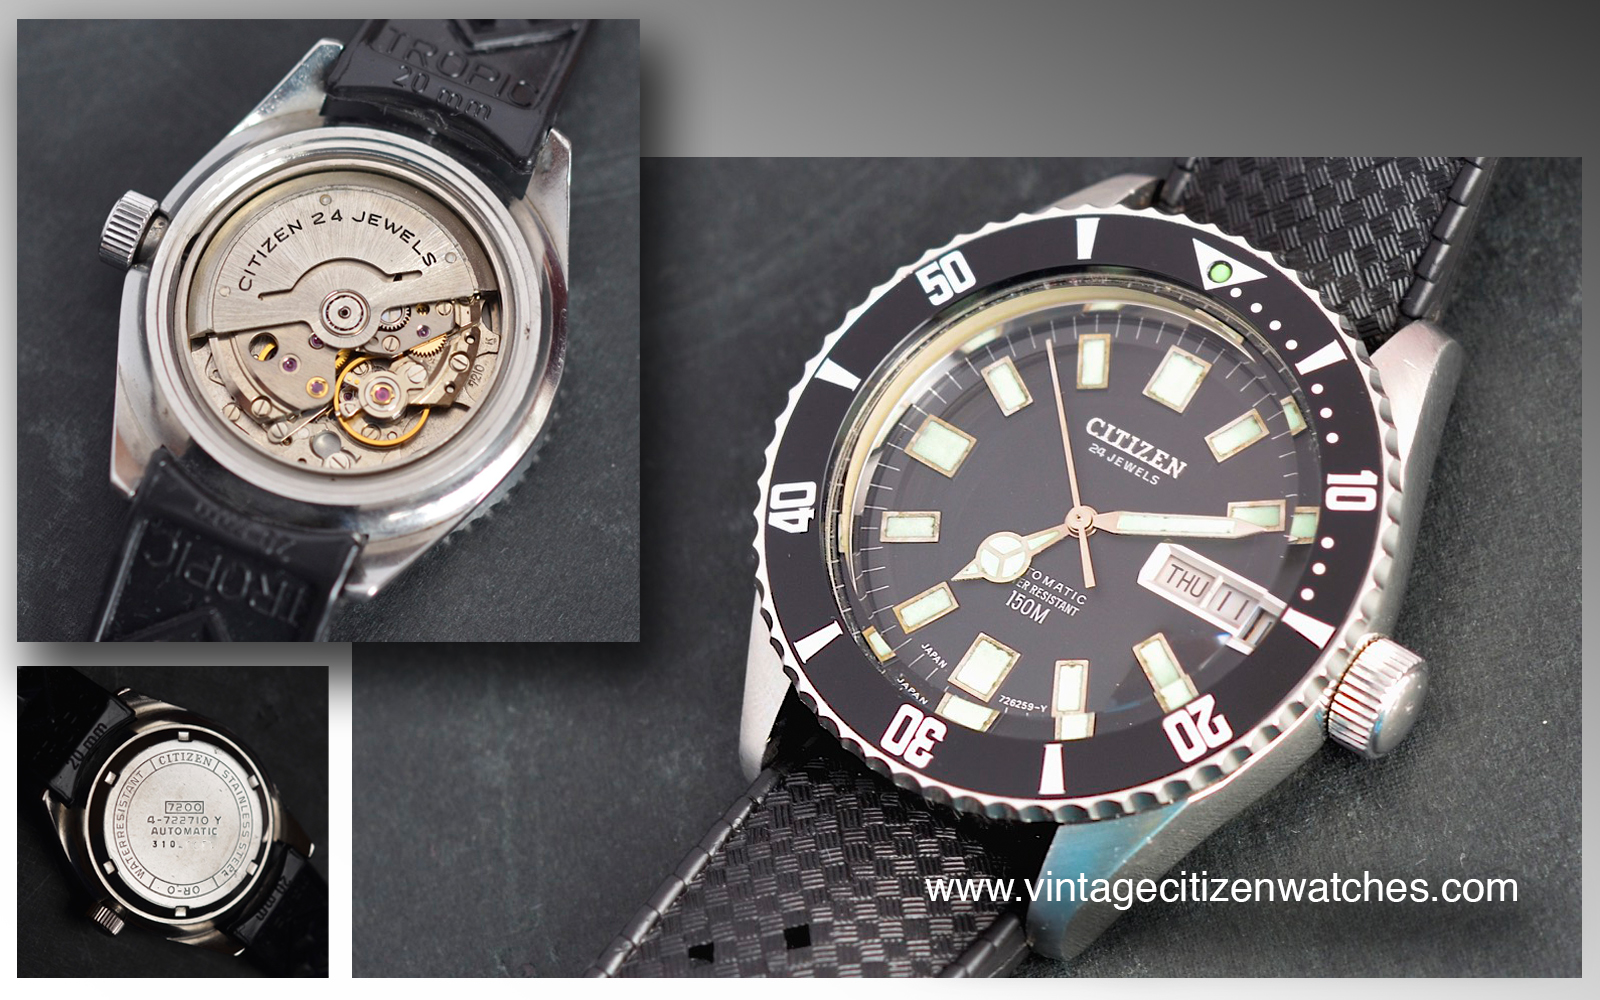 Dating citizen watches